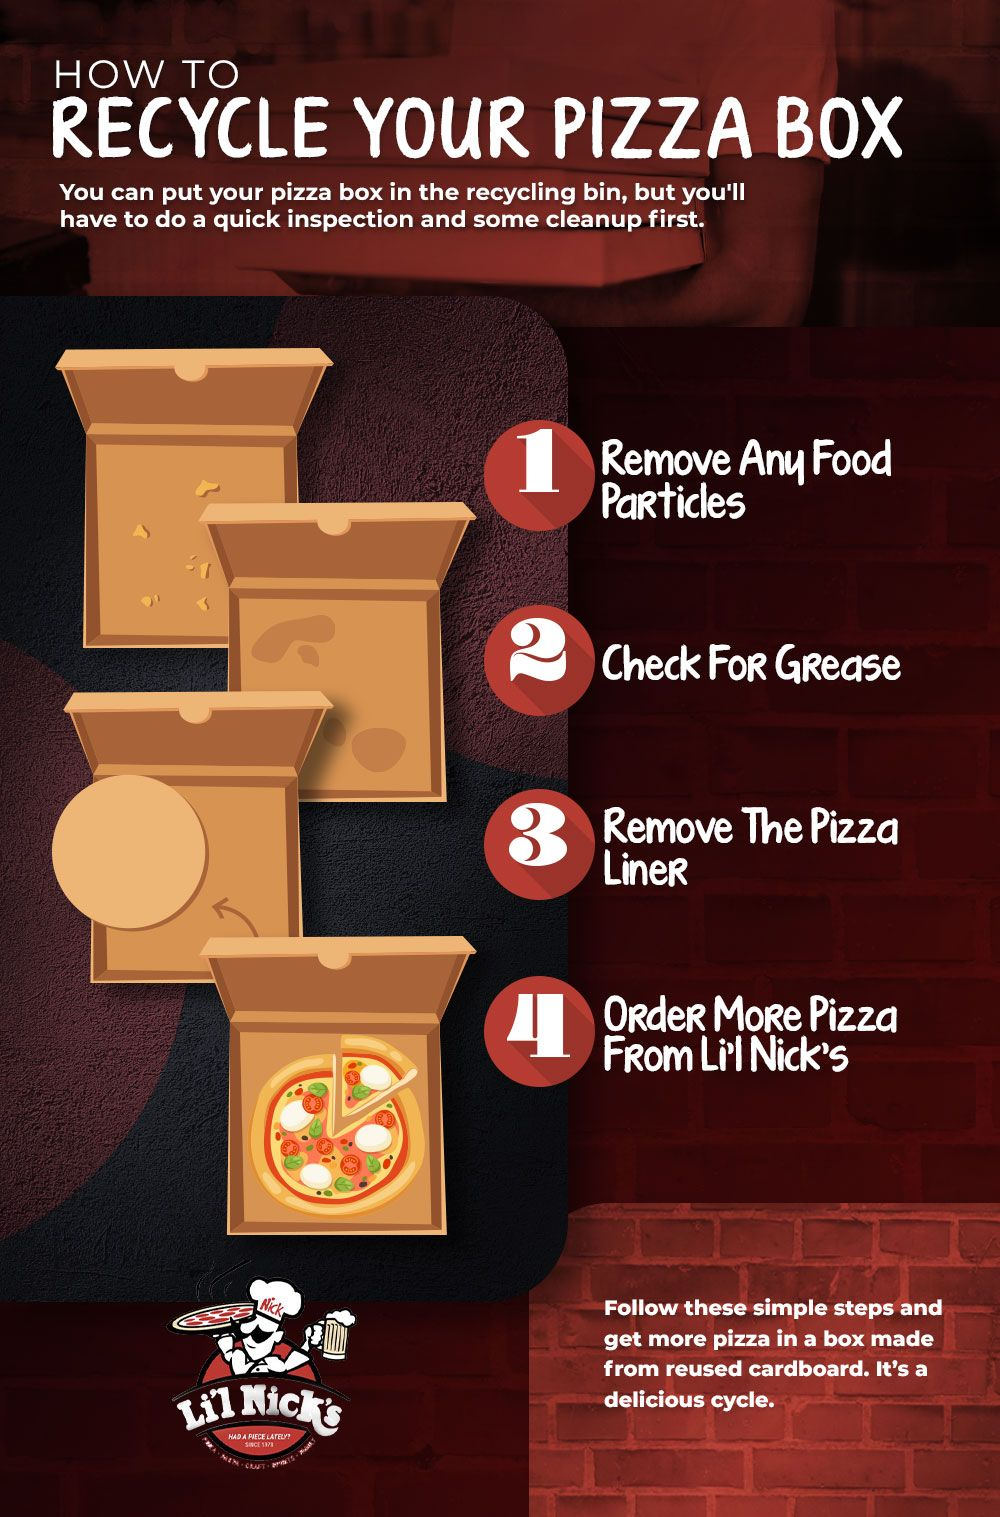 recyclepizzaboxes-infographic.jpg